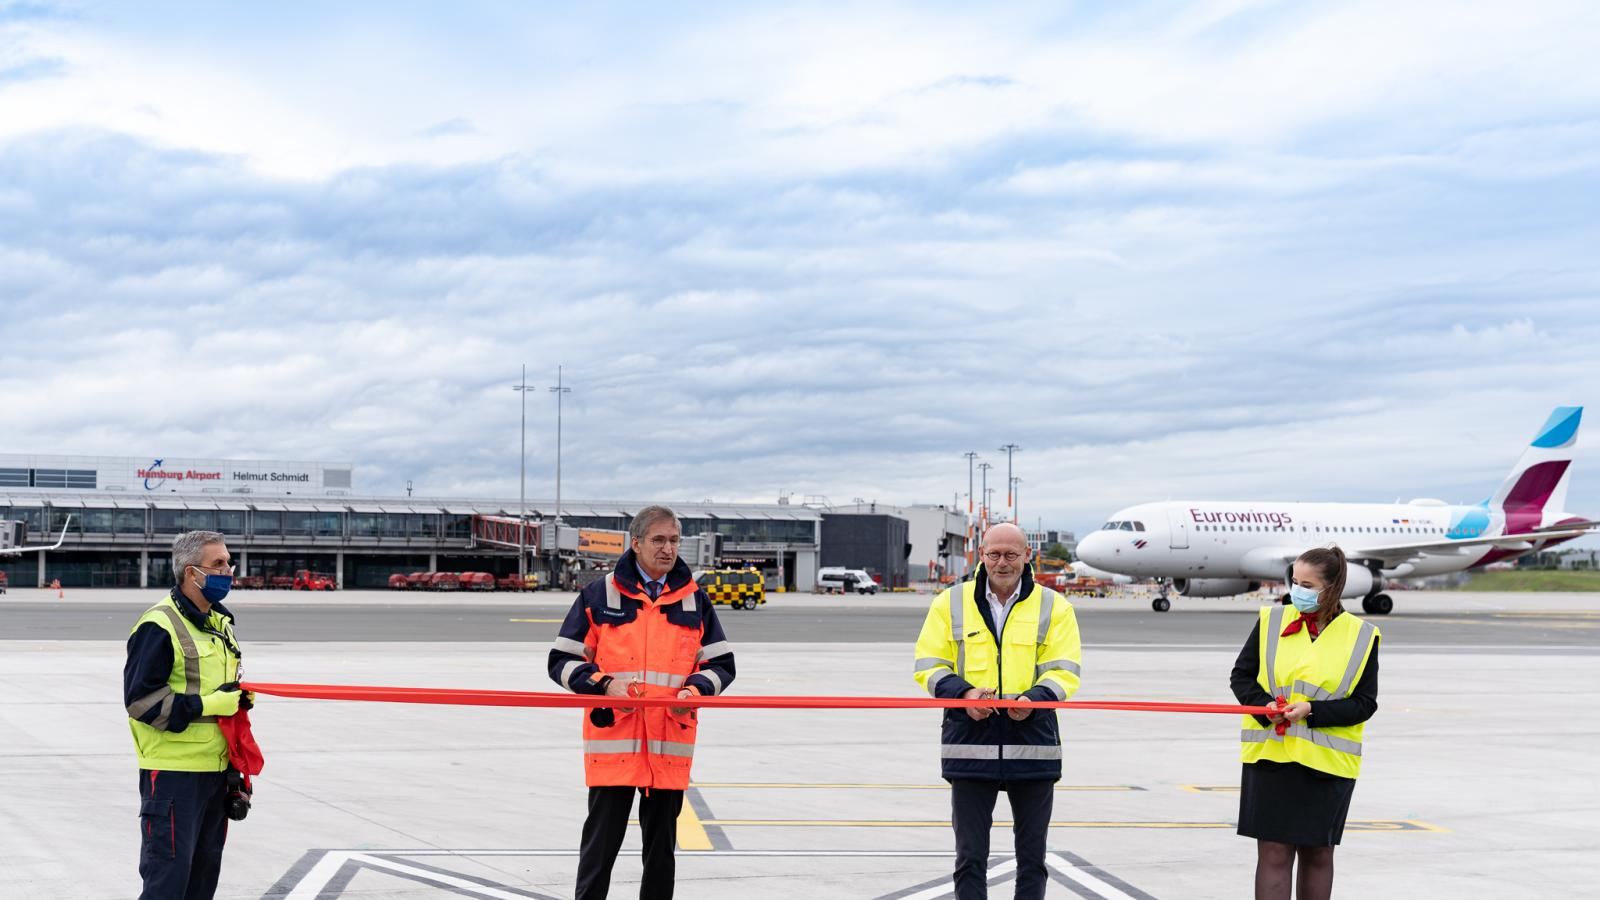 Hamburg Airport's new apron